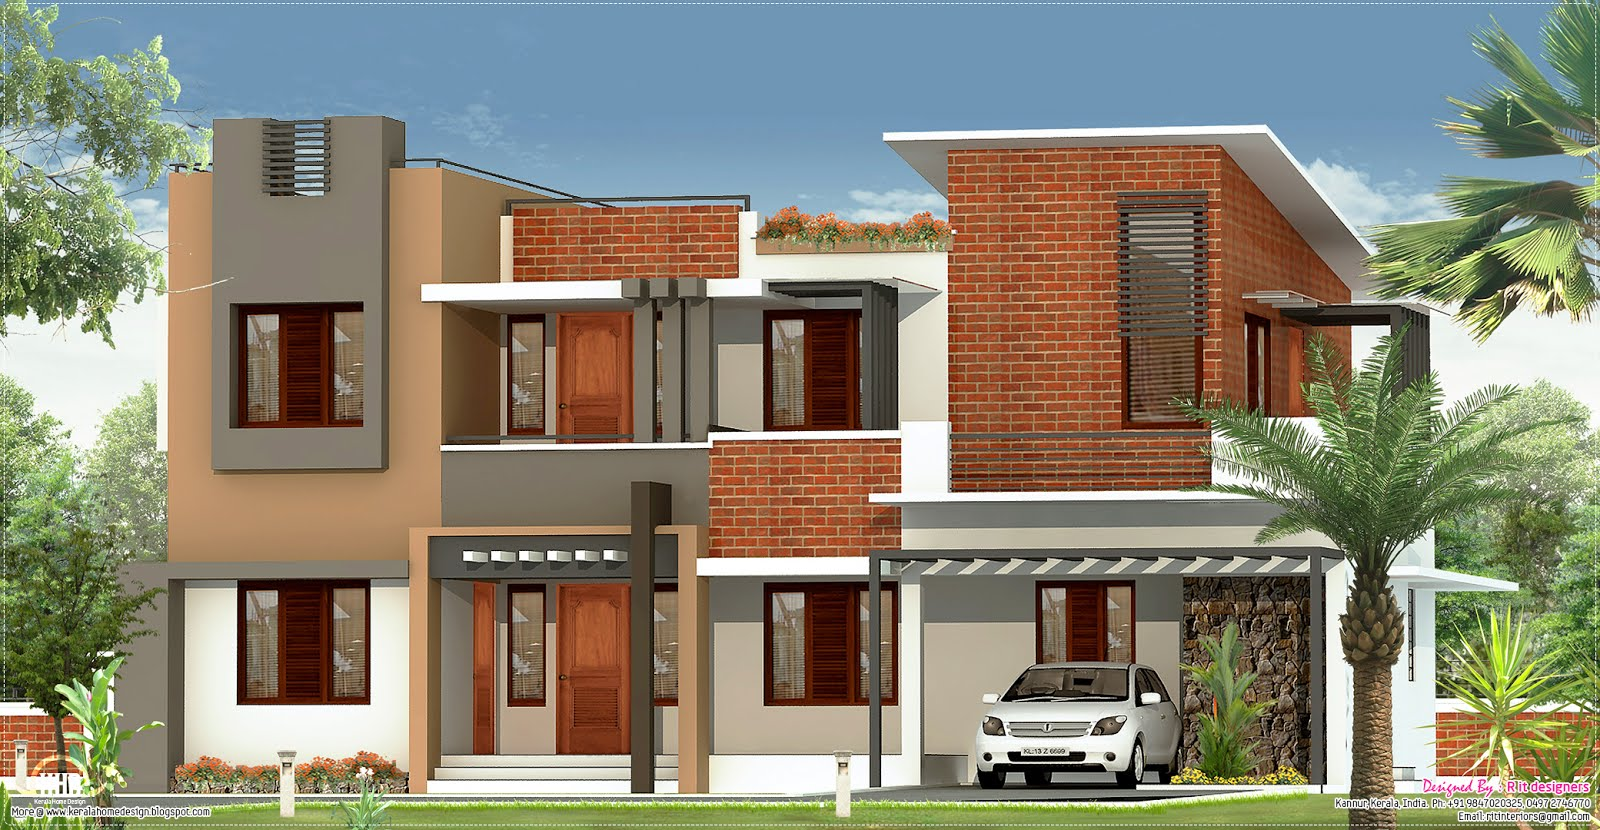 Awesome modern flat roof house plans 27 pictures house for Kerala home design flat roof elevation